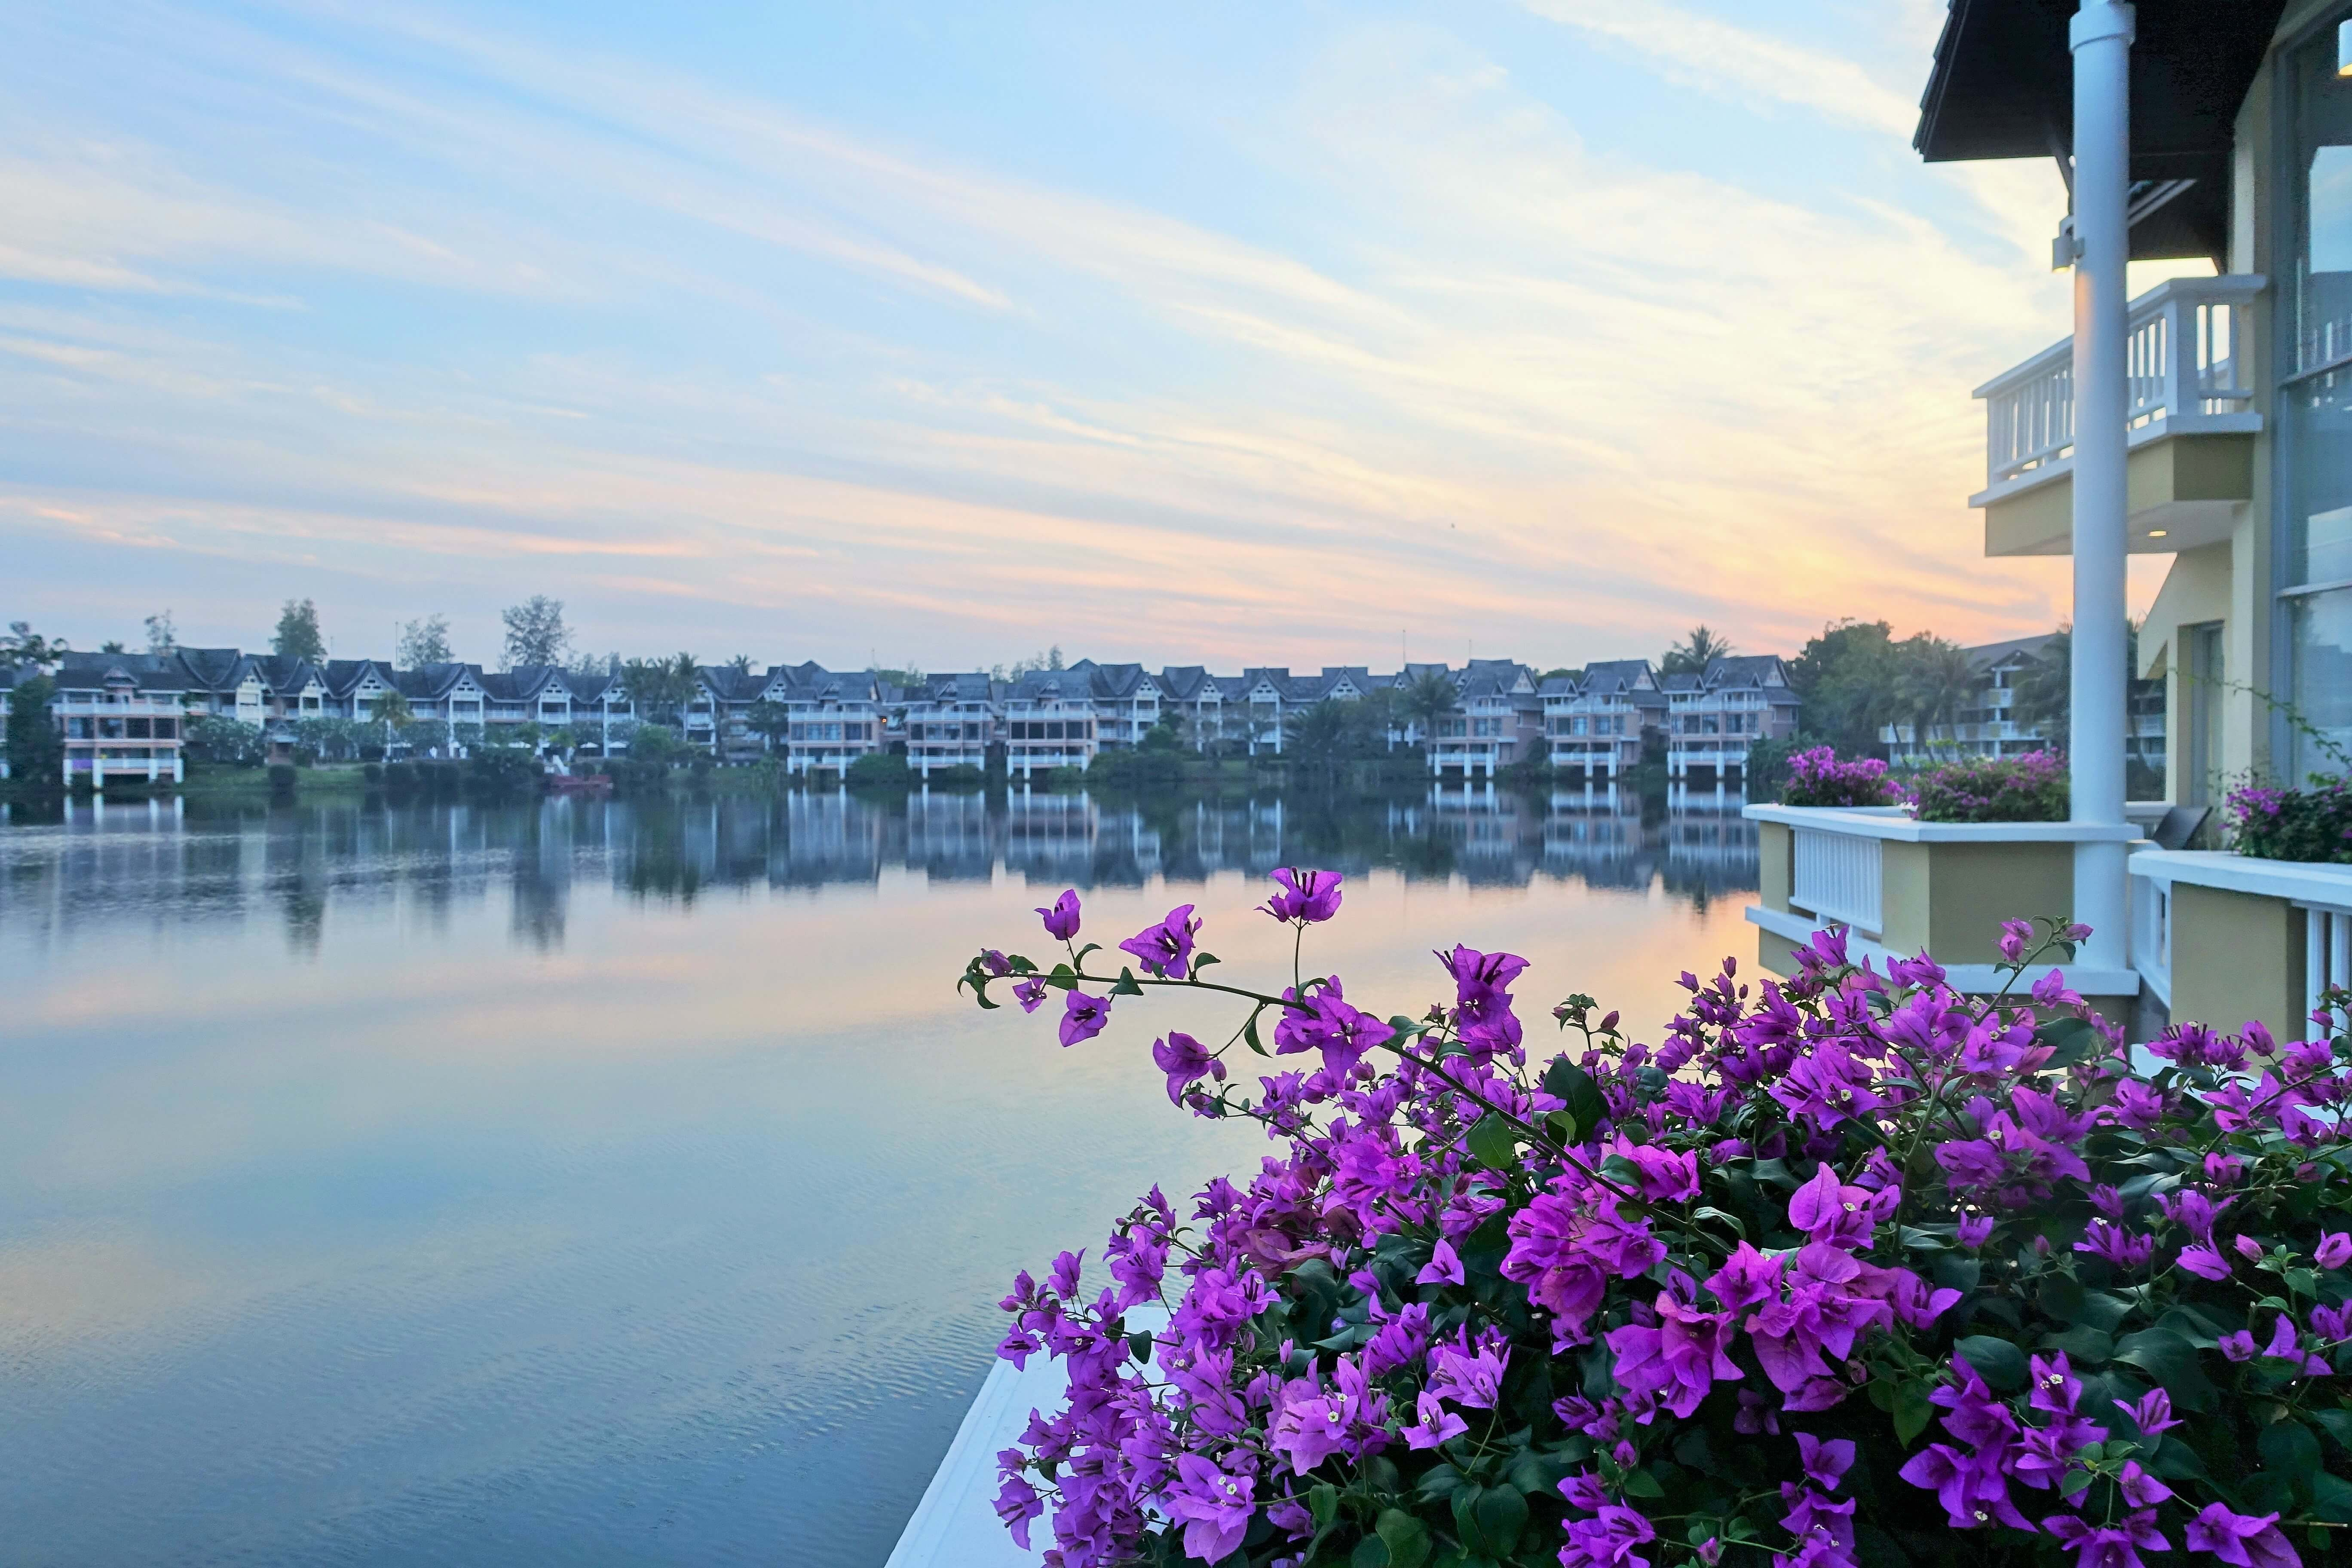 pink bouganvillea on a balcony overlooking a lagoon